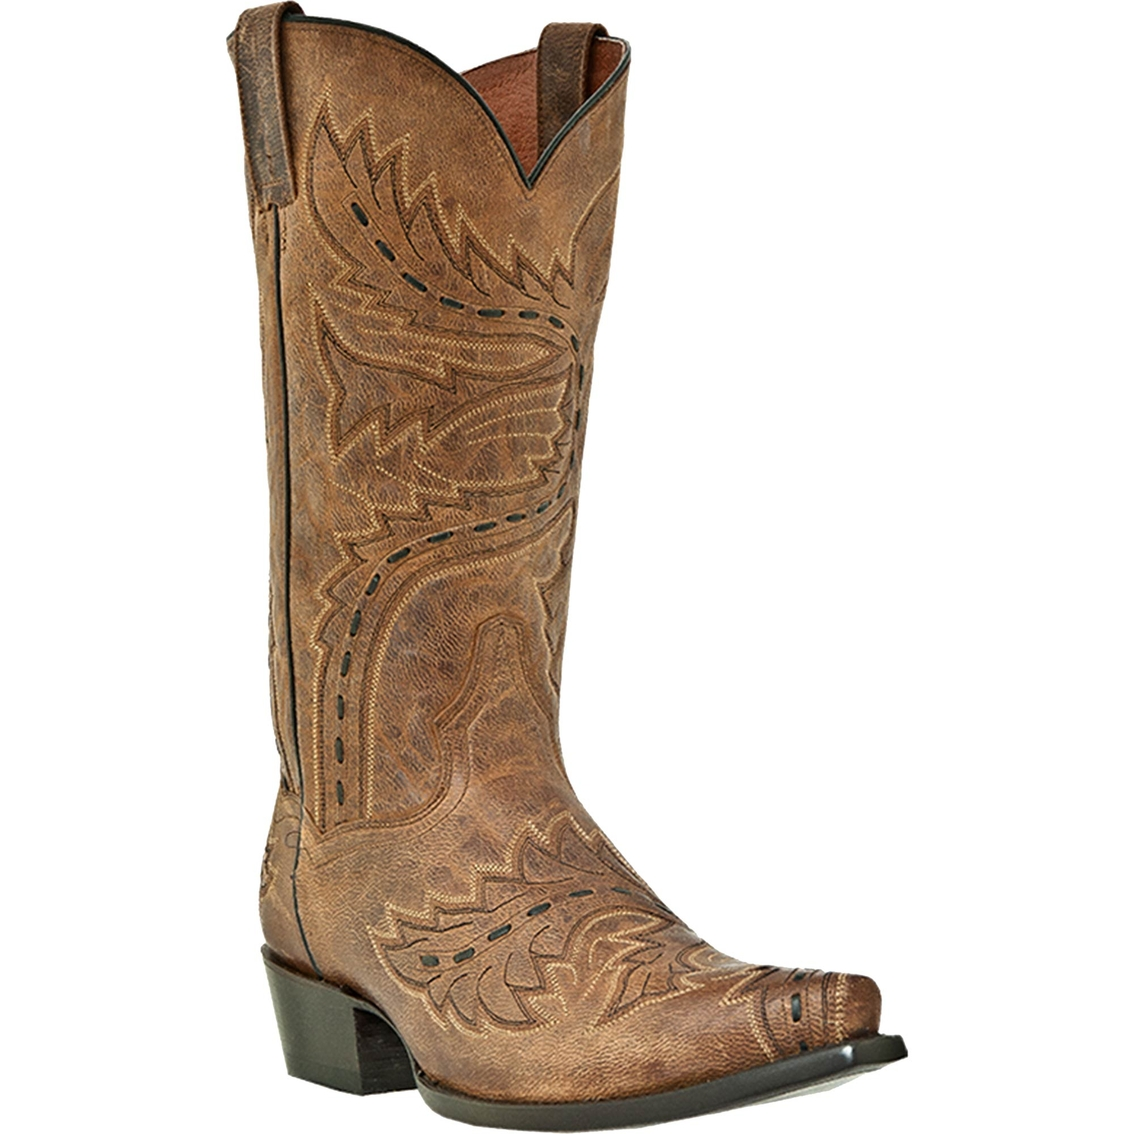 645642551f9 Dan Post Men's Madcat Sidewinder 13 In. Boots | Western | Shoes ...